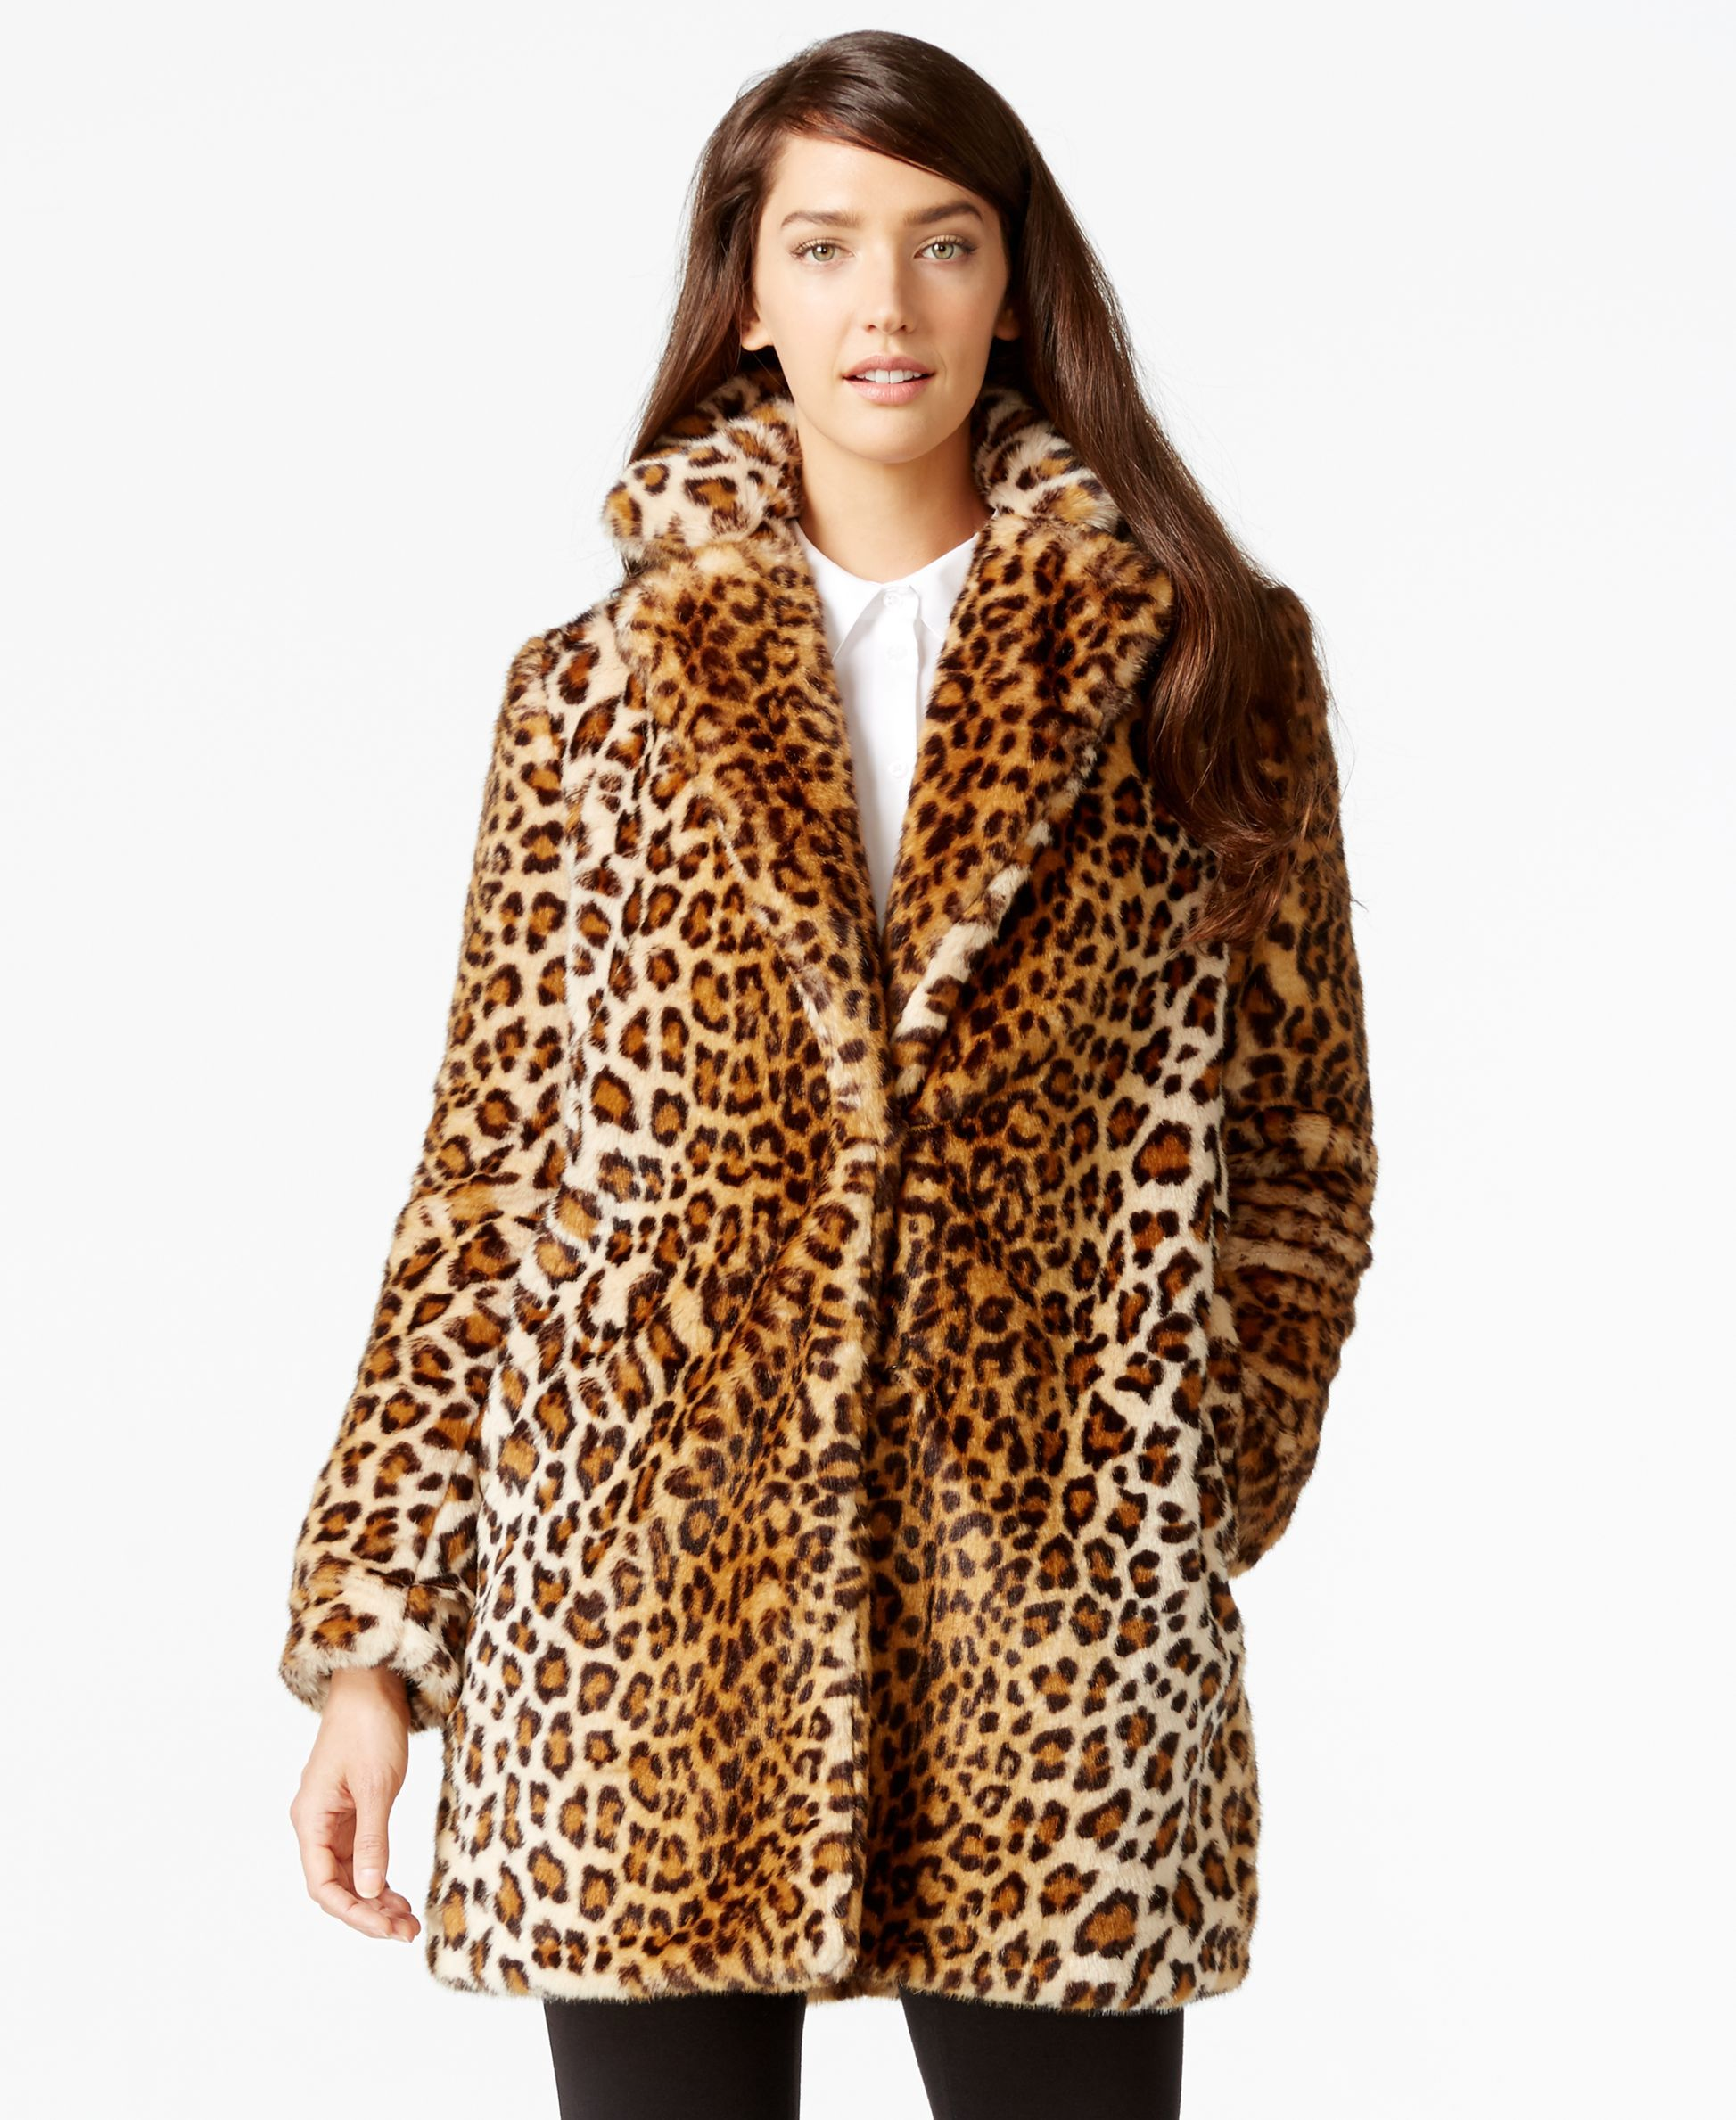 daf3996f809a Calvin Klein Leopard-Print Faux-Fur Coat | My Christmas List | Coat ...